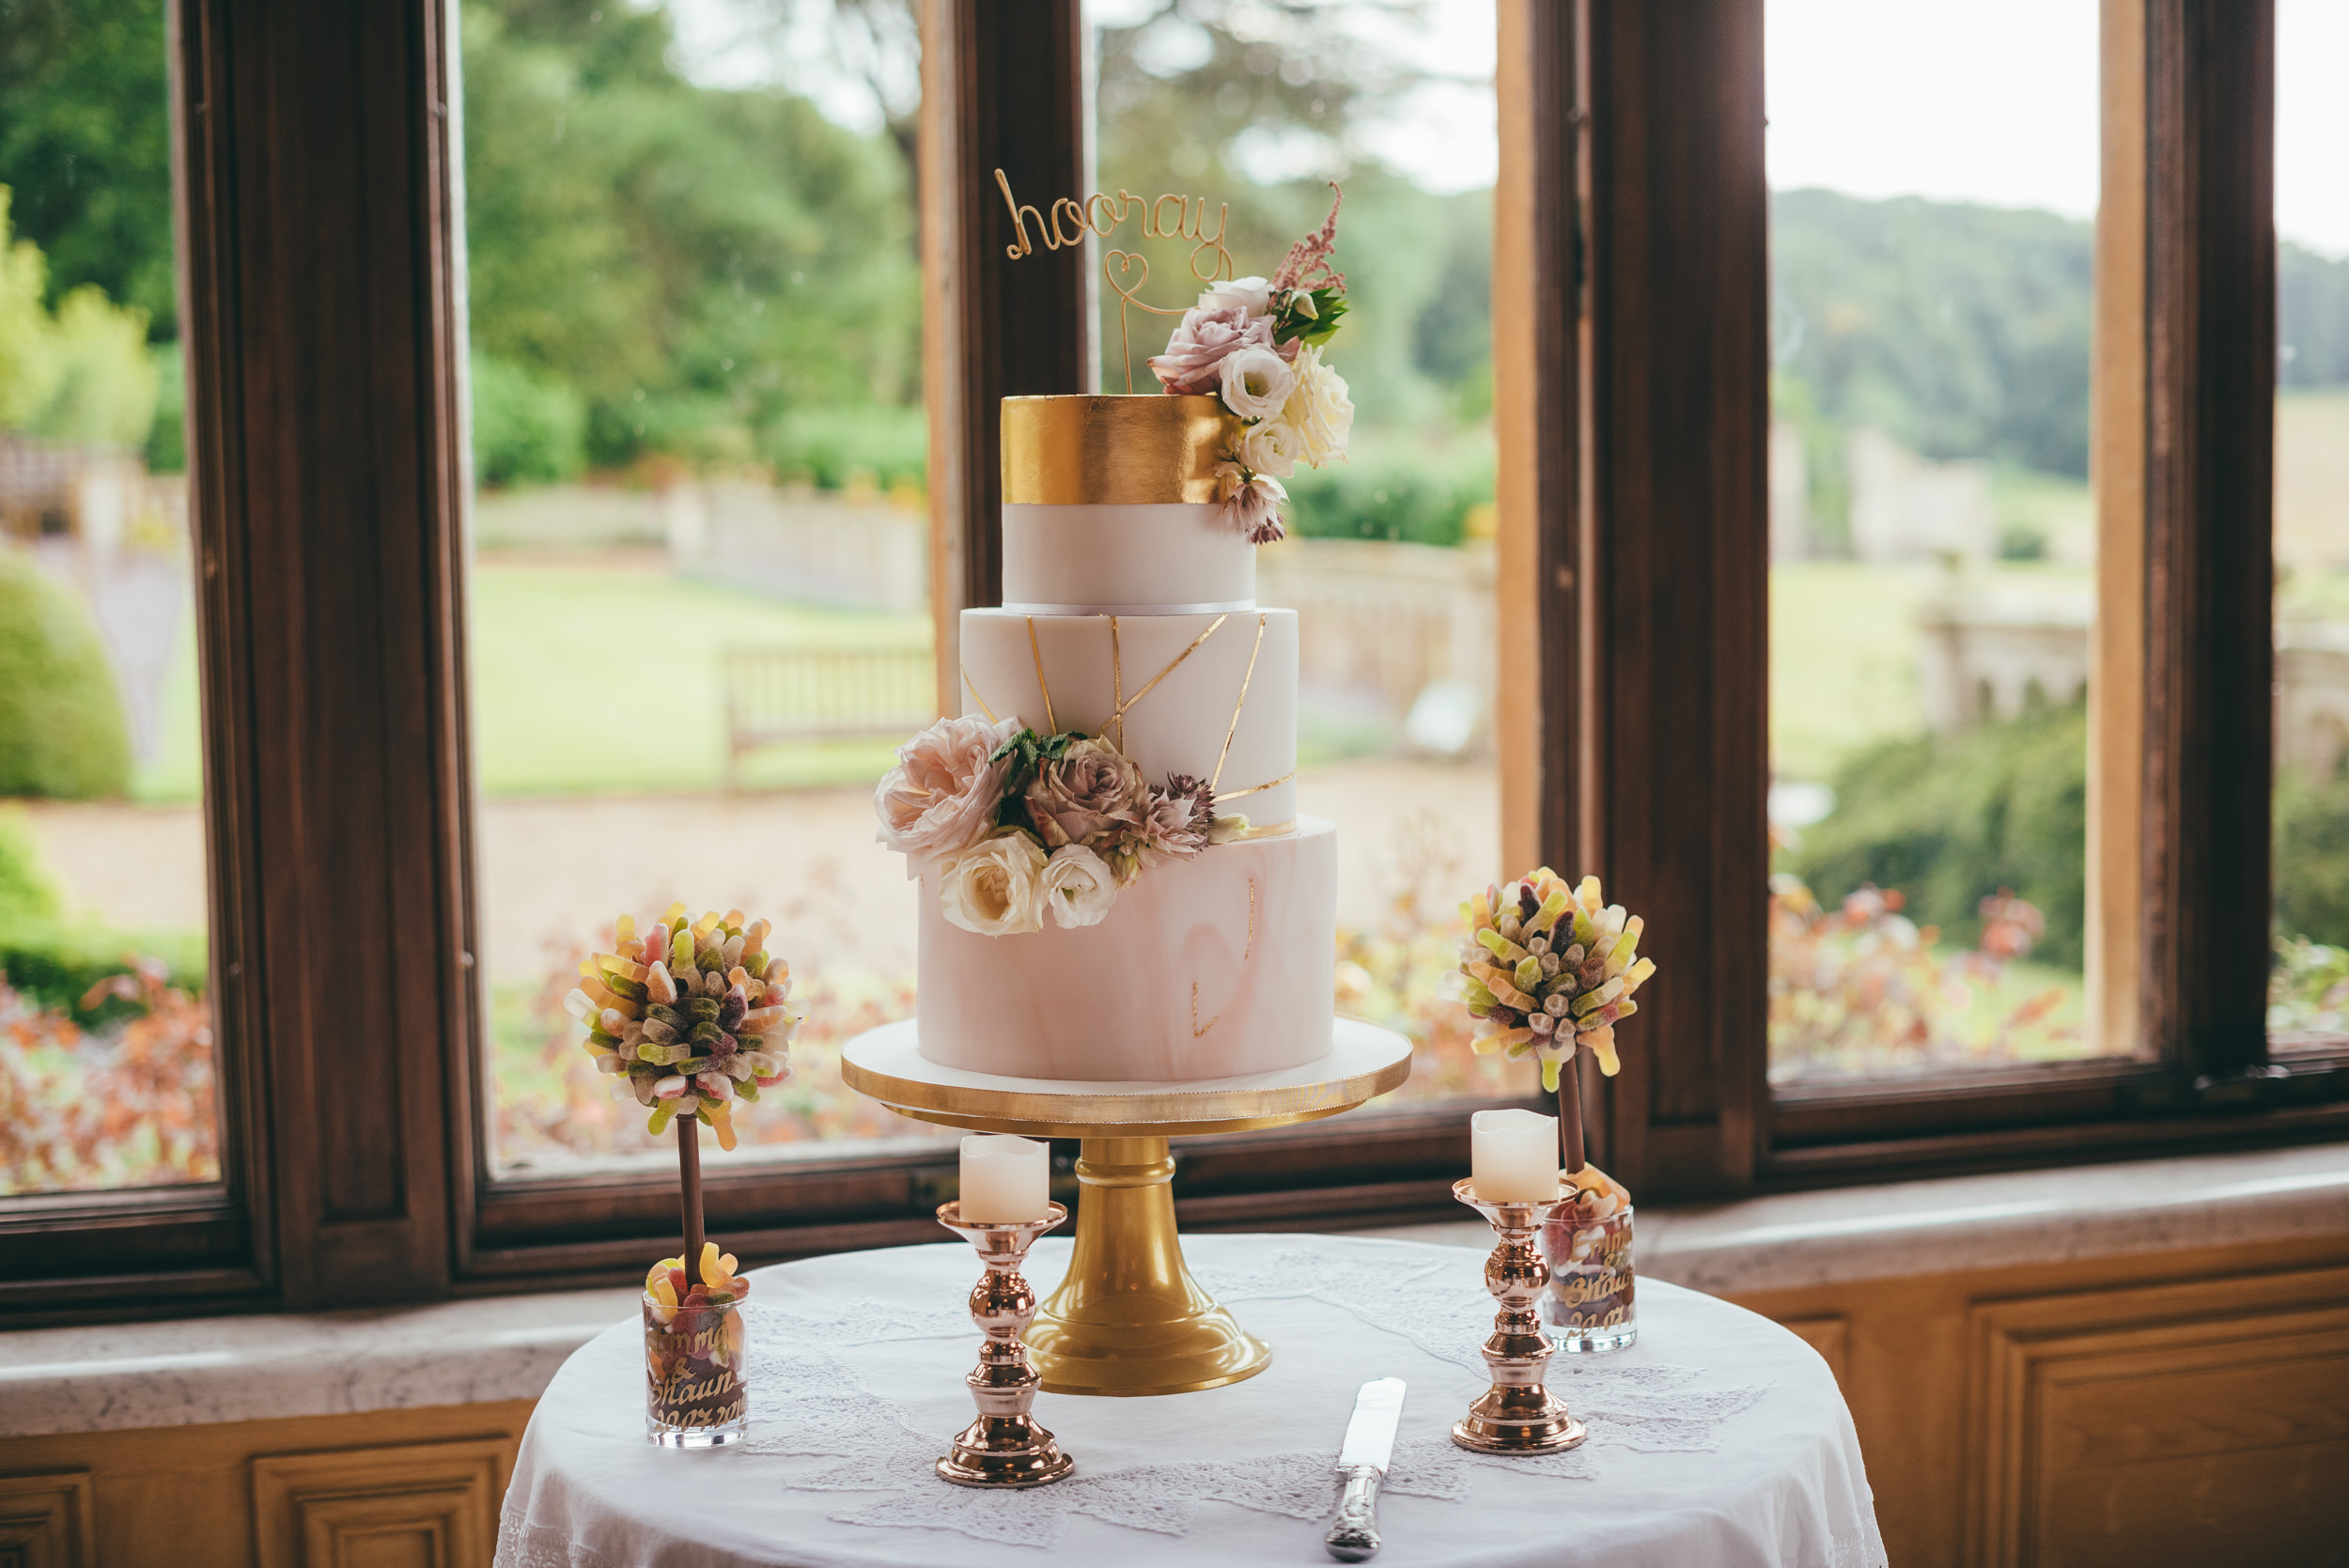 Wedding cake by the window at Harlaxton Manor